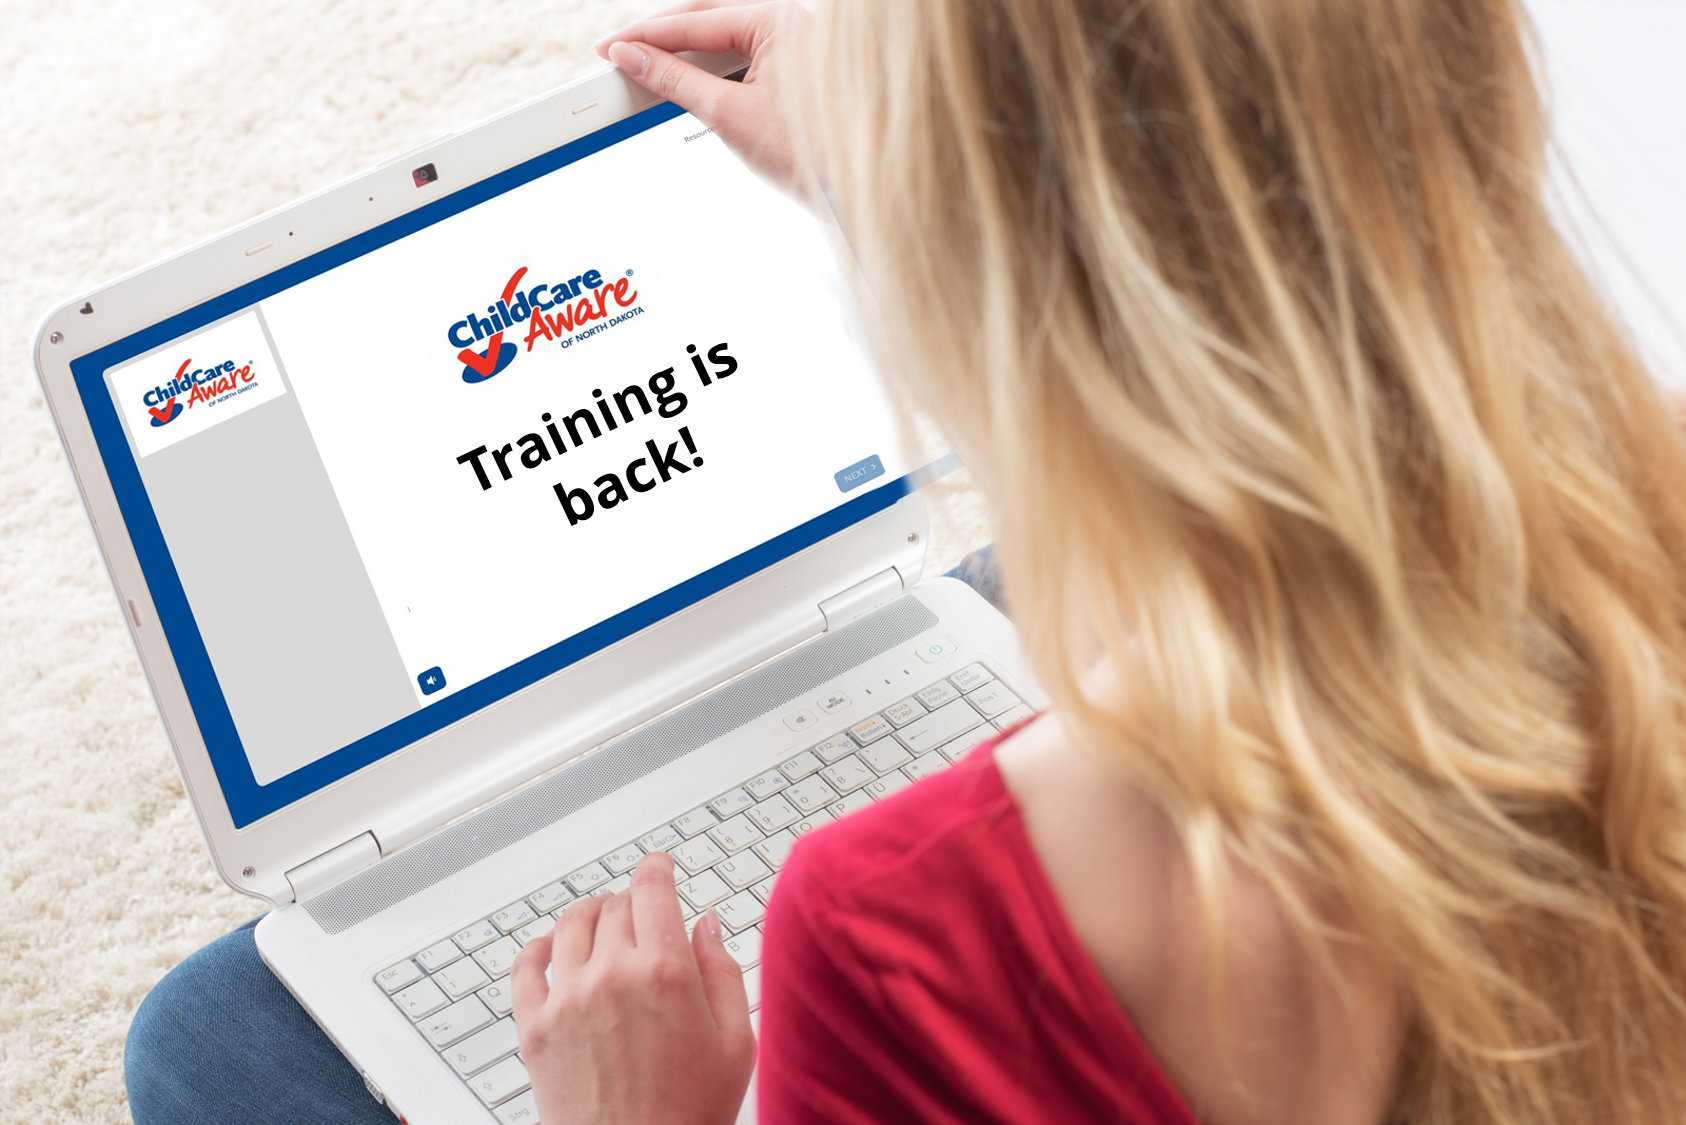 Training available at no cost through June 30, 2021